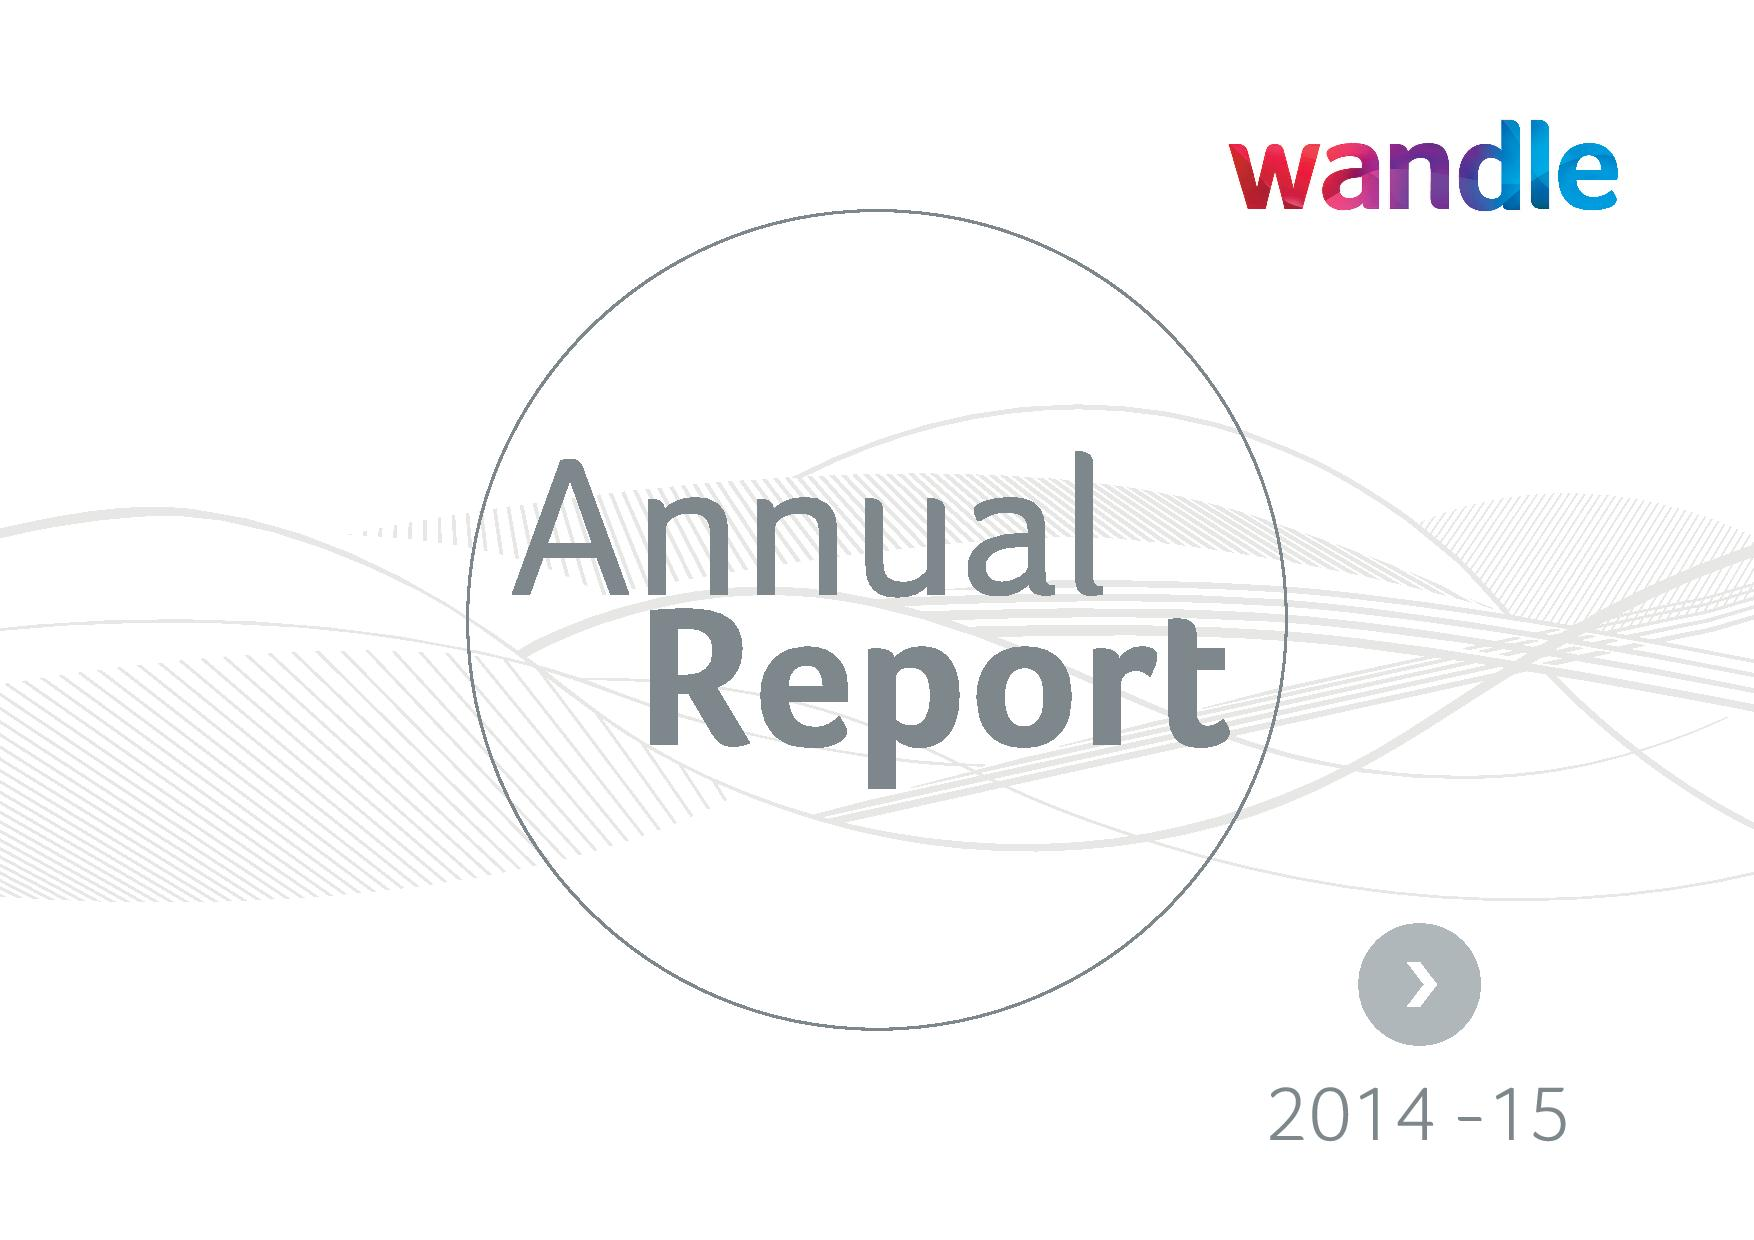 Wandle Annual Report 2014/15